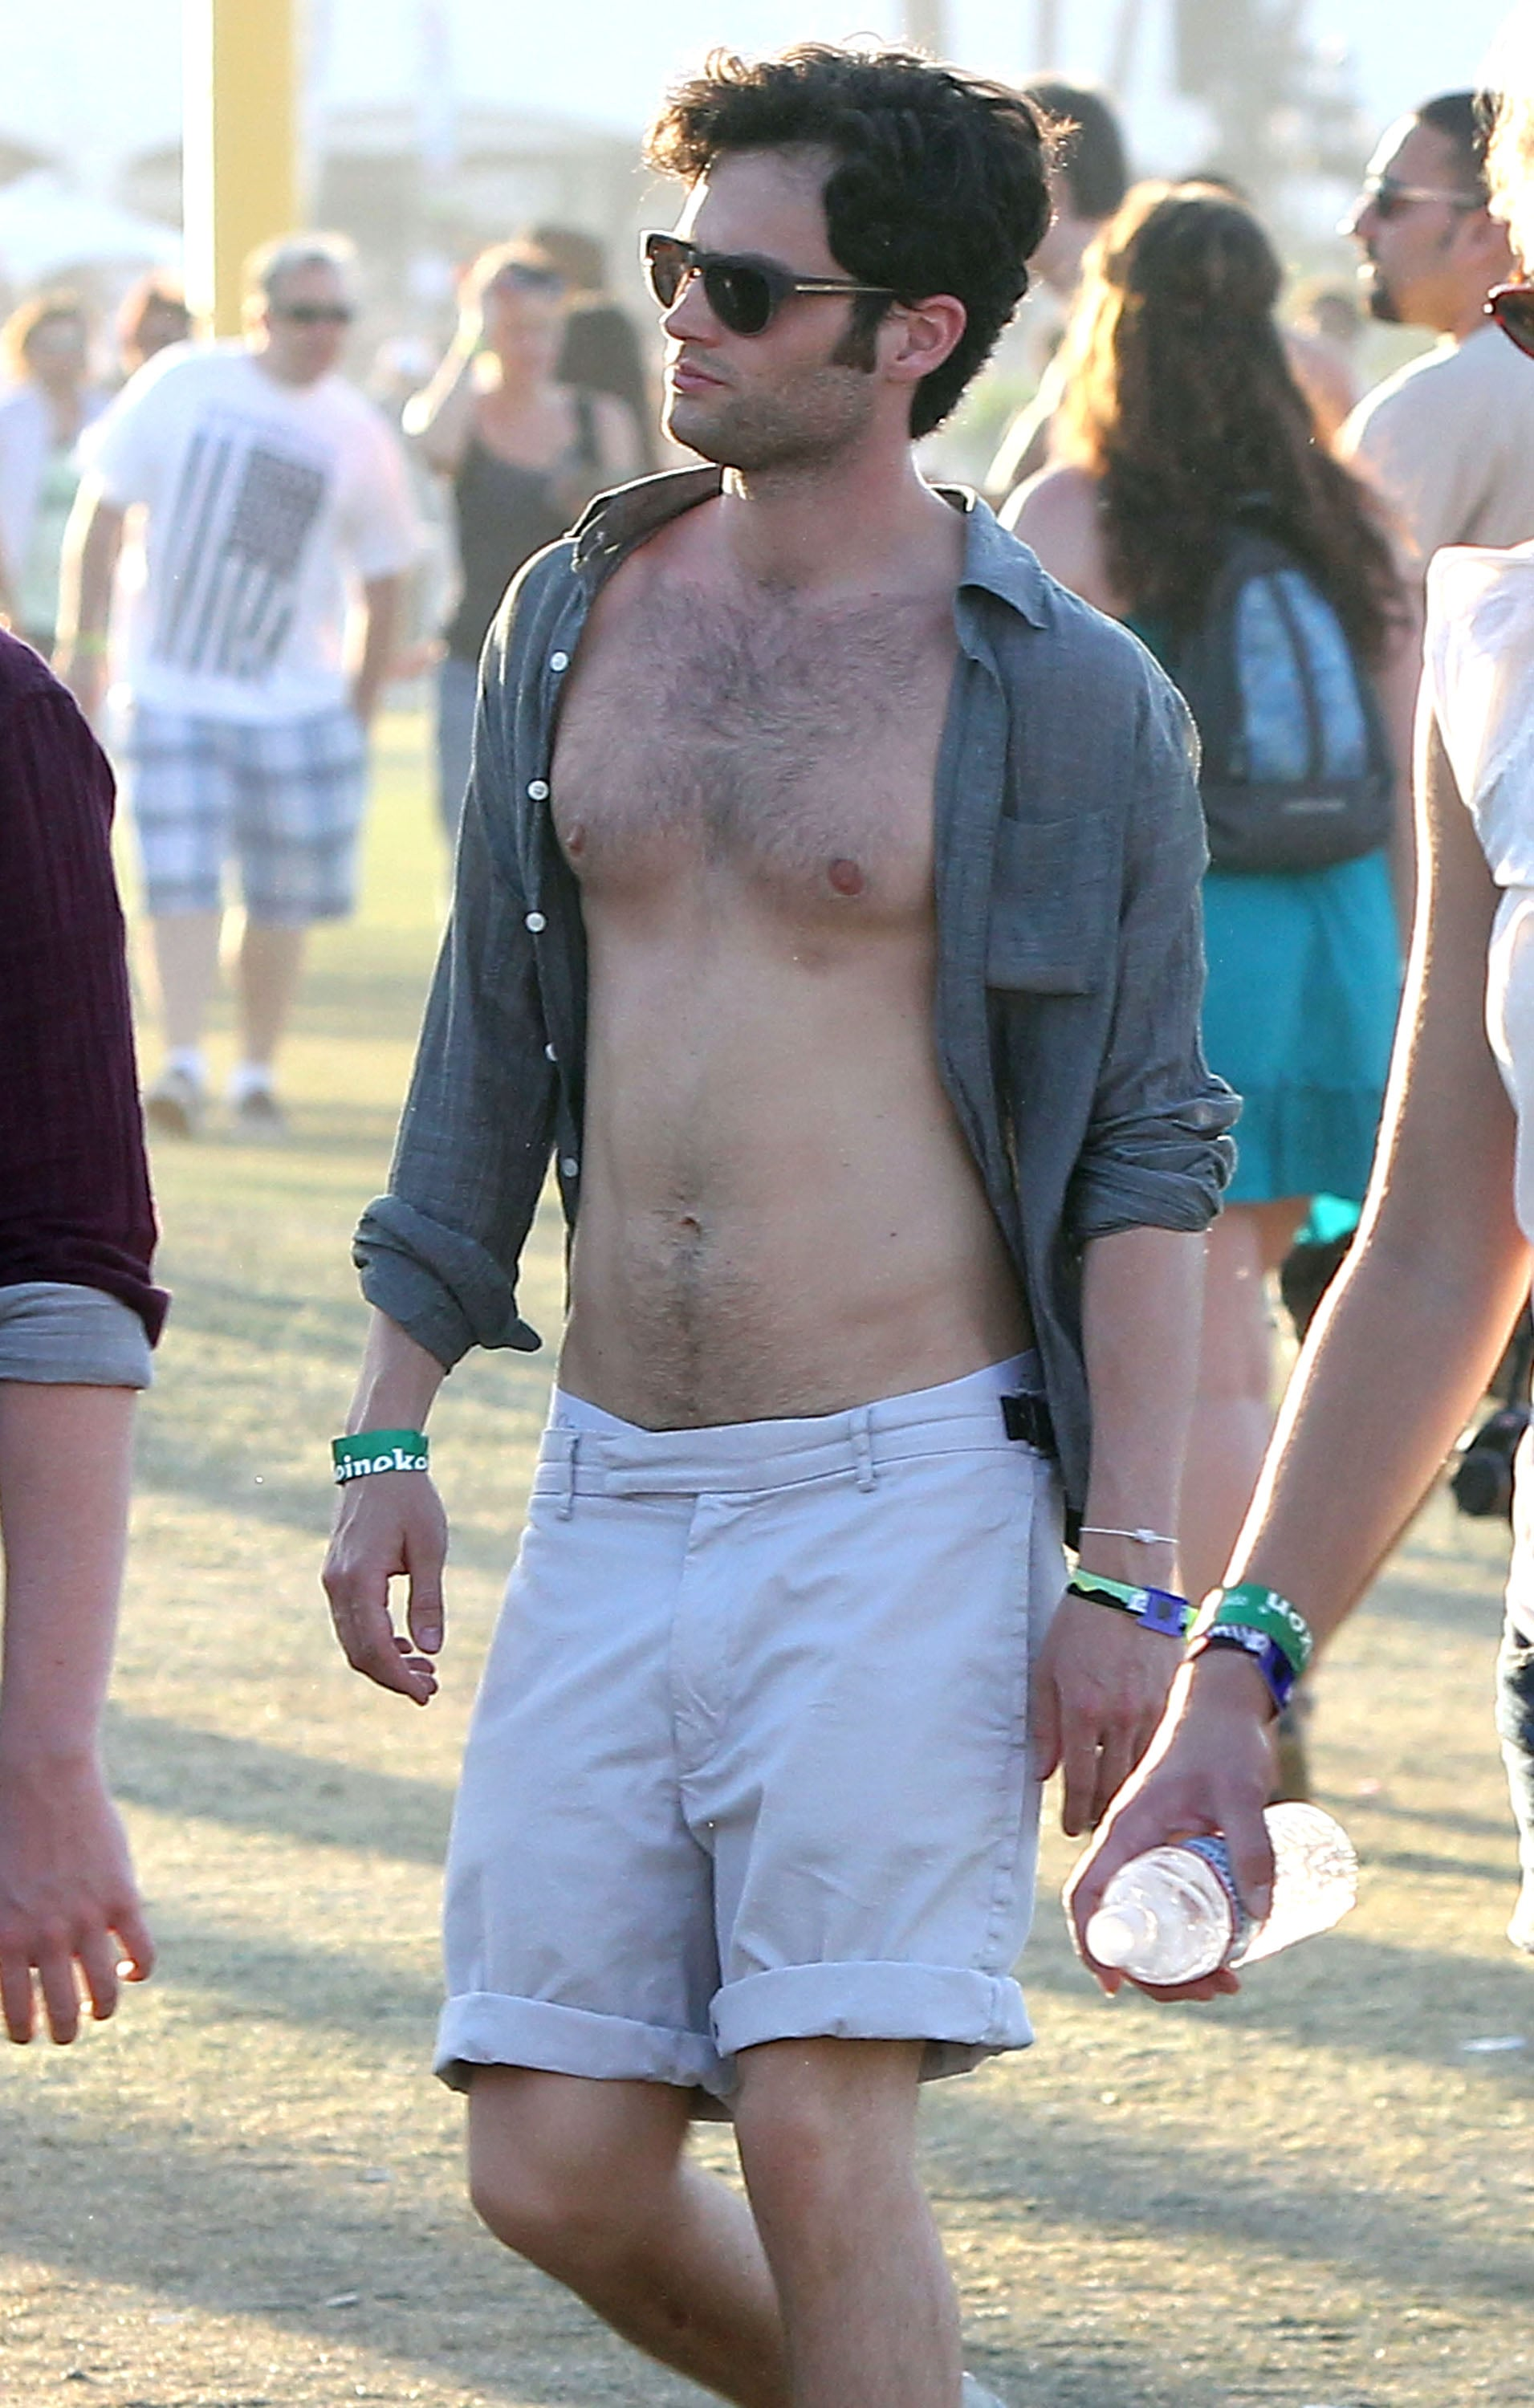 Penn Badgley went shirtless in the 2011 crowd.